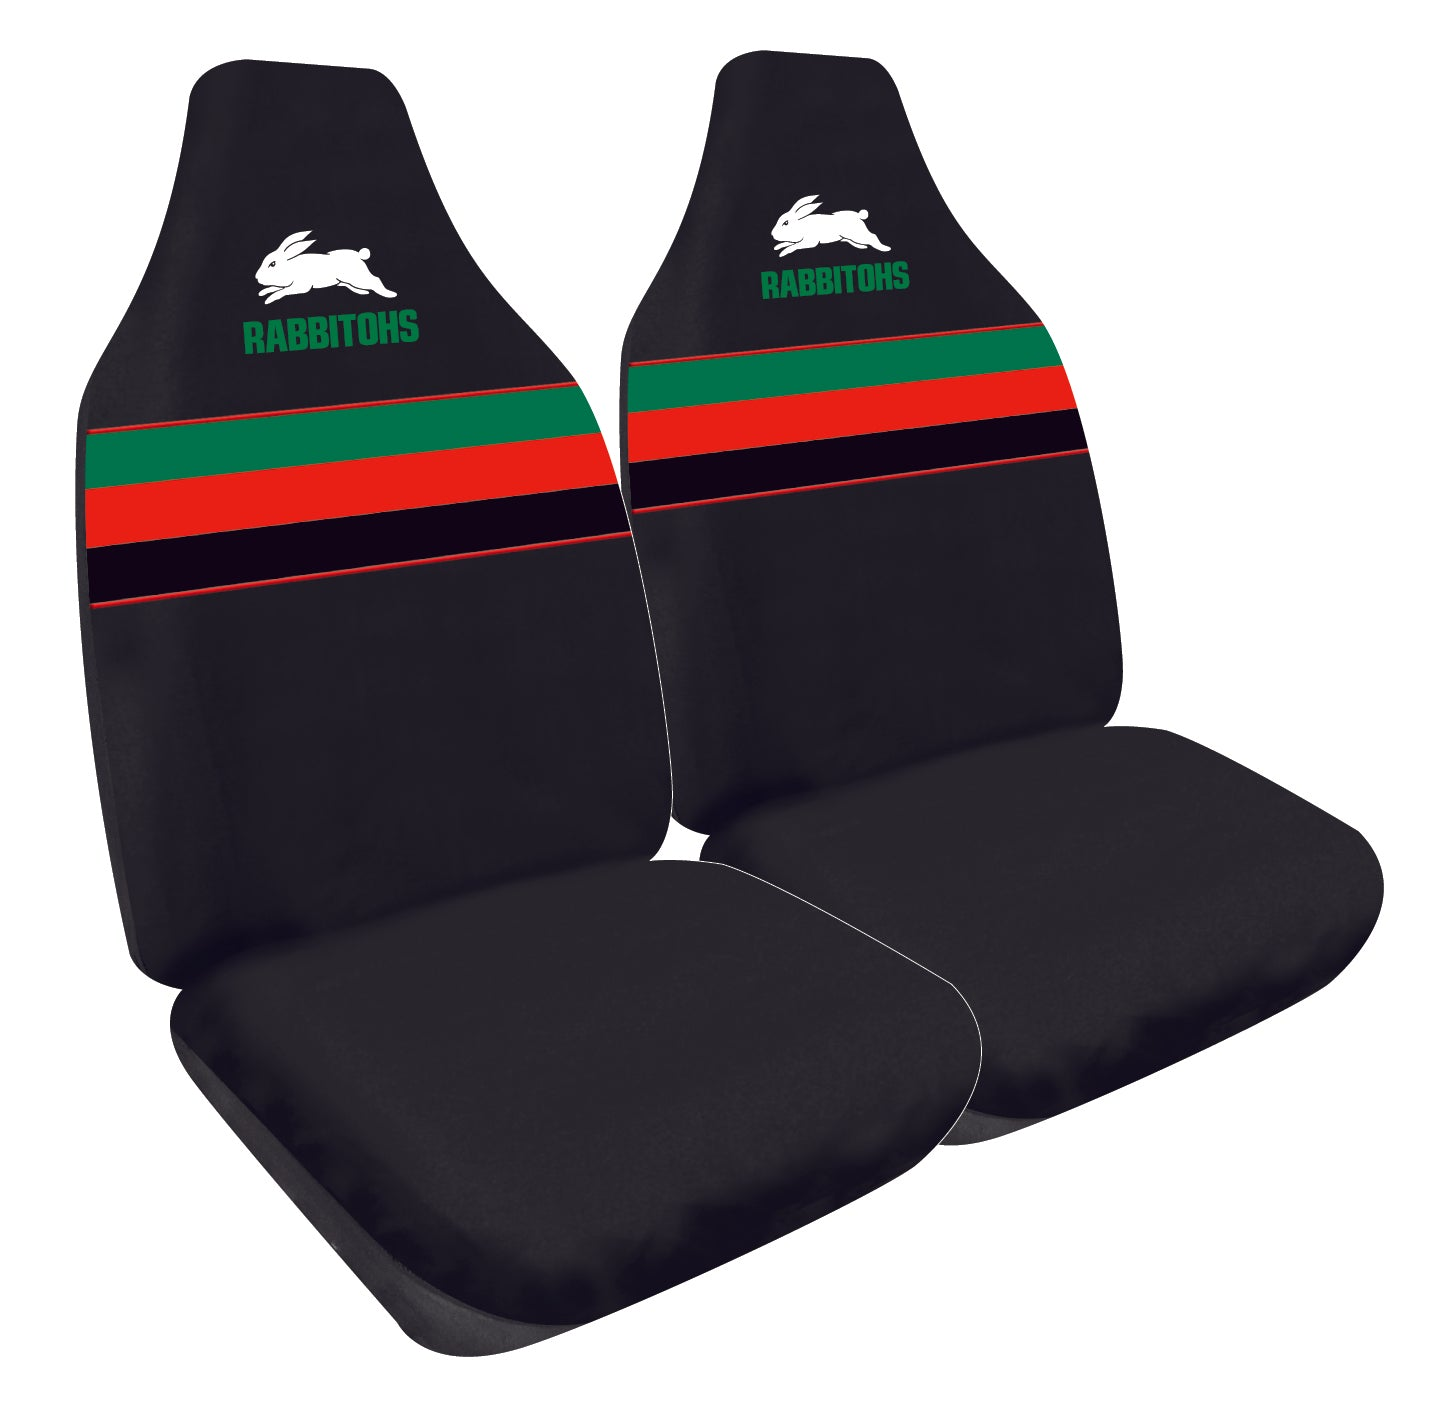 South Sydney Rabbitohs Car Seat Covers